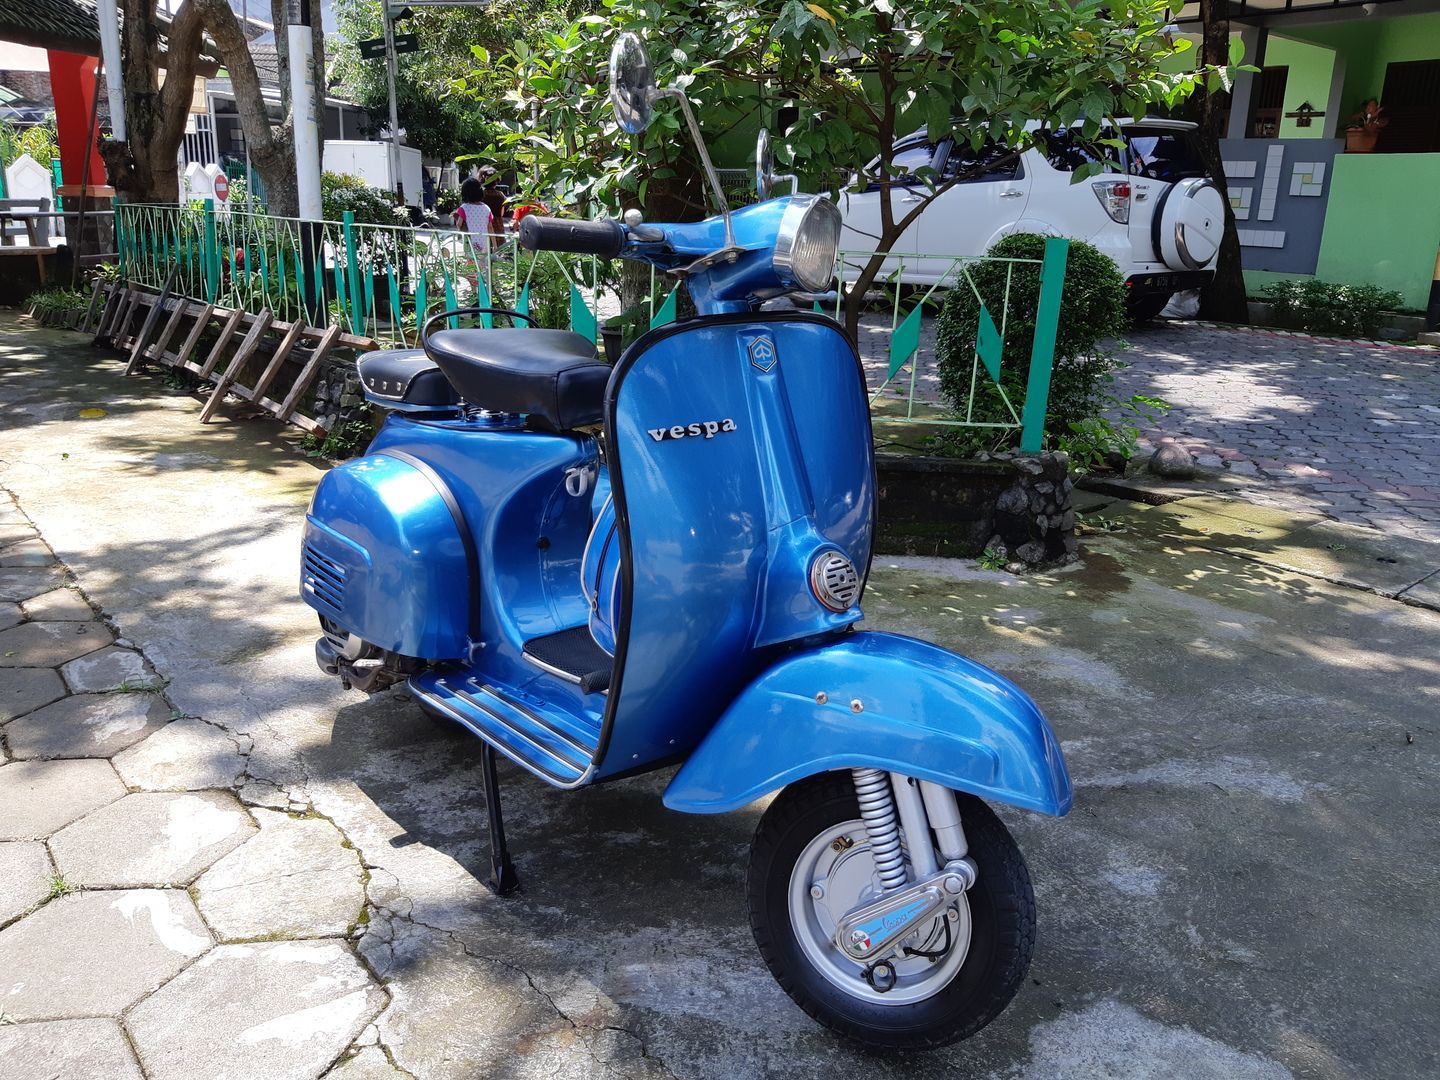 Vespa Super Grenada Blue Th 79